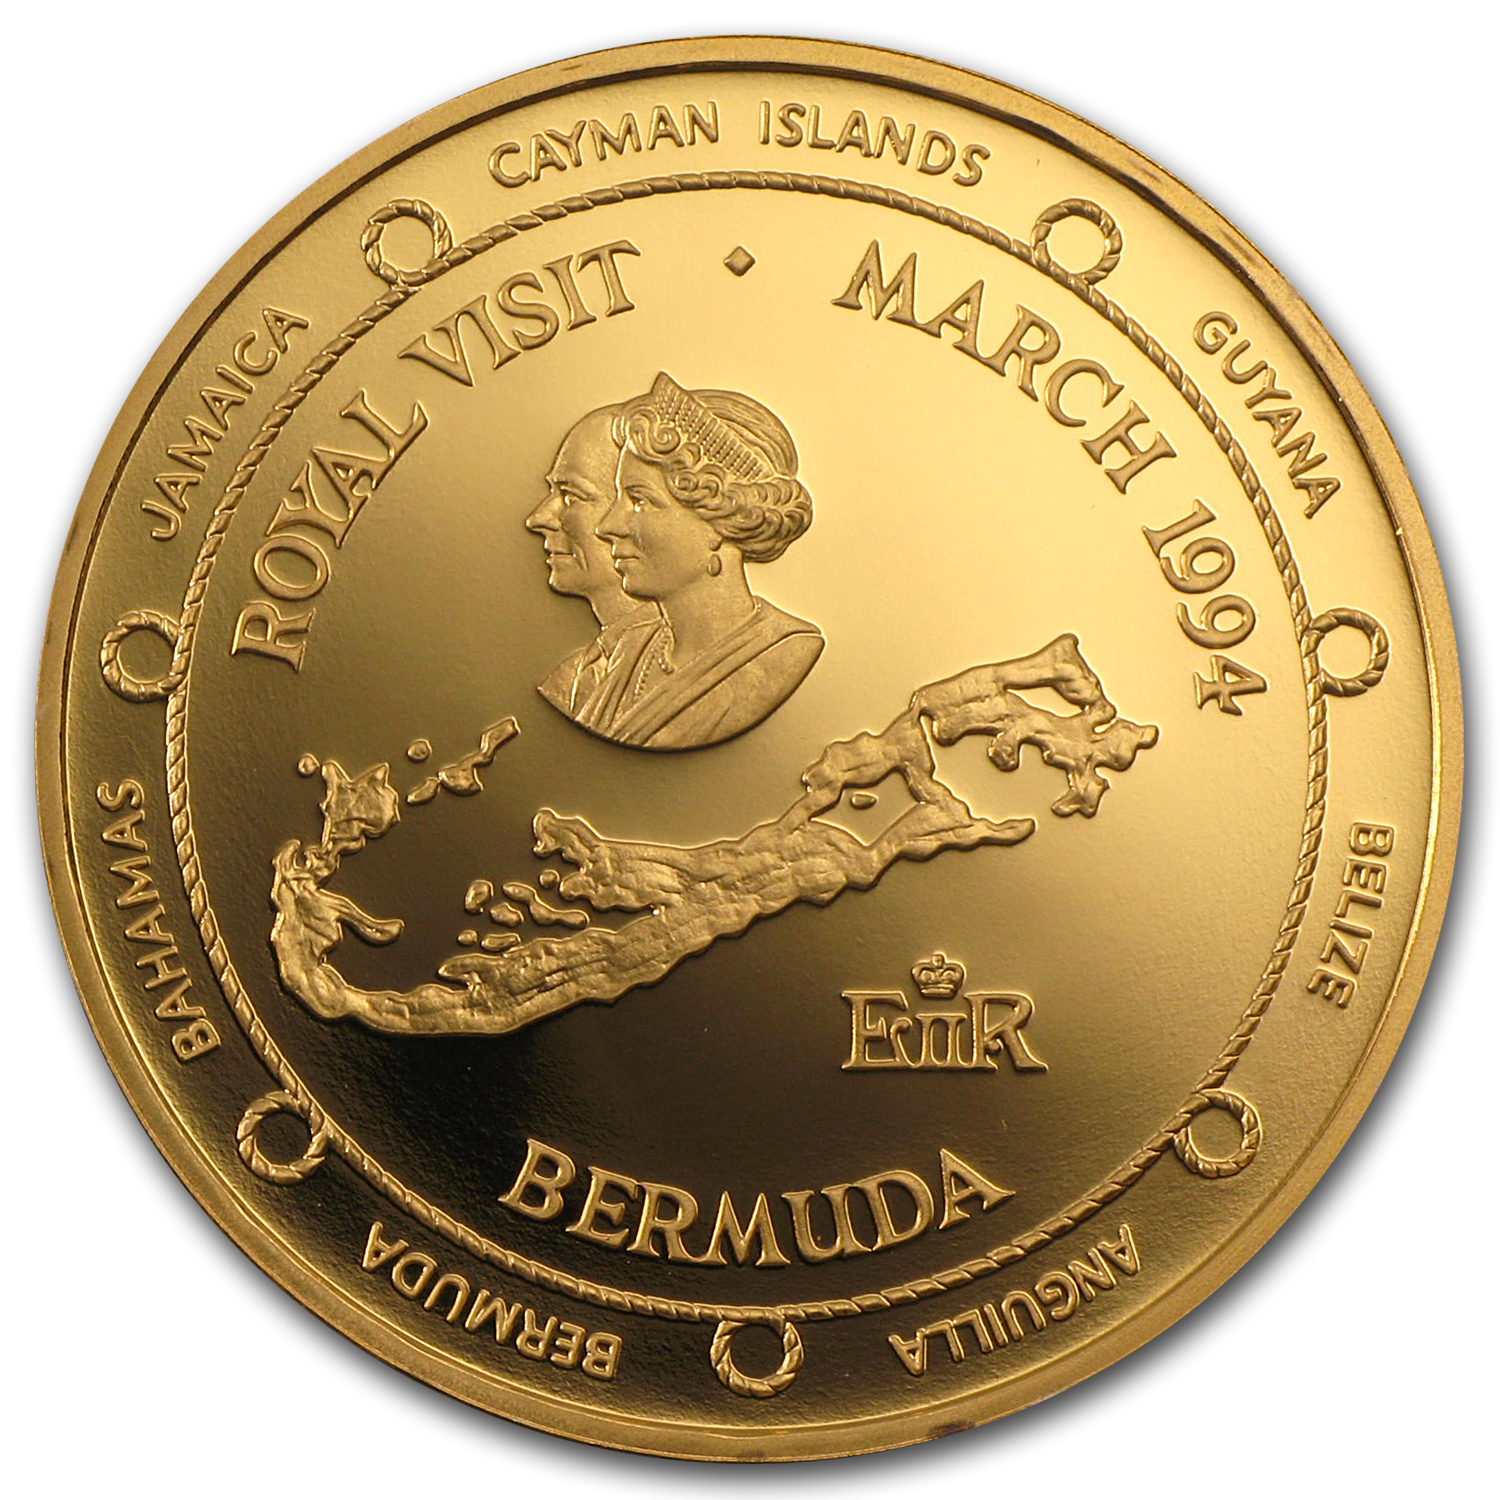 1994 Bermuda Proof Gold $100 Royal Visit